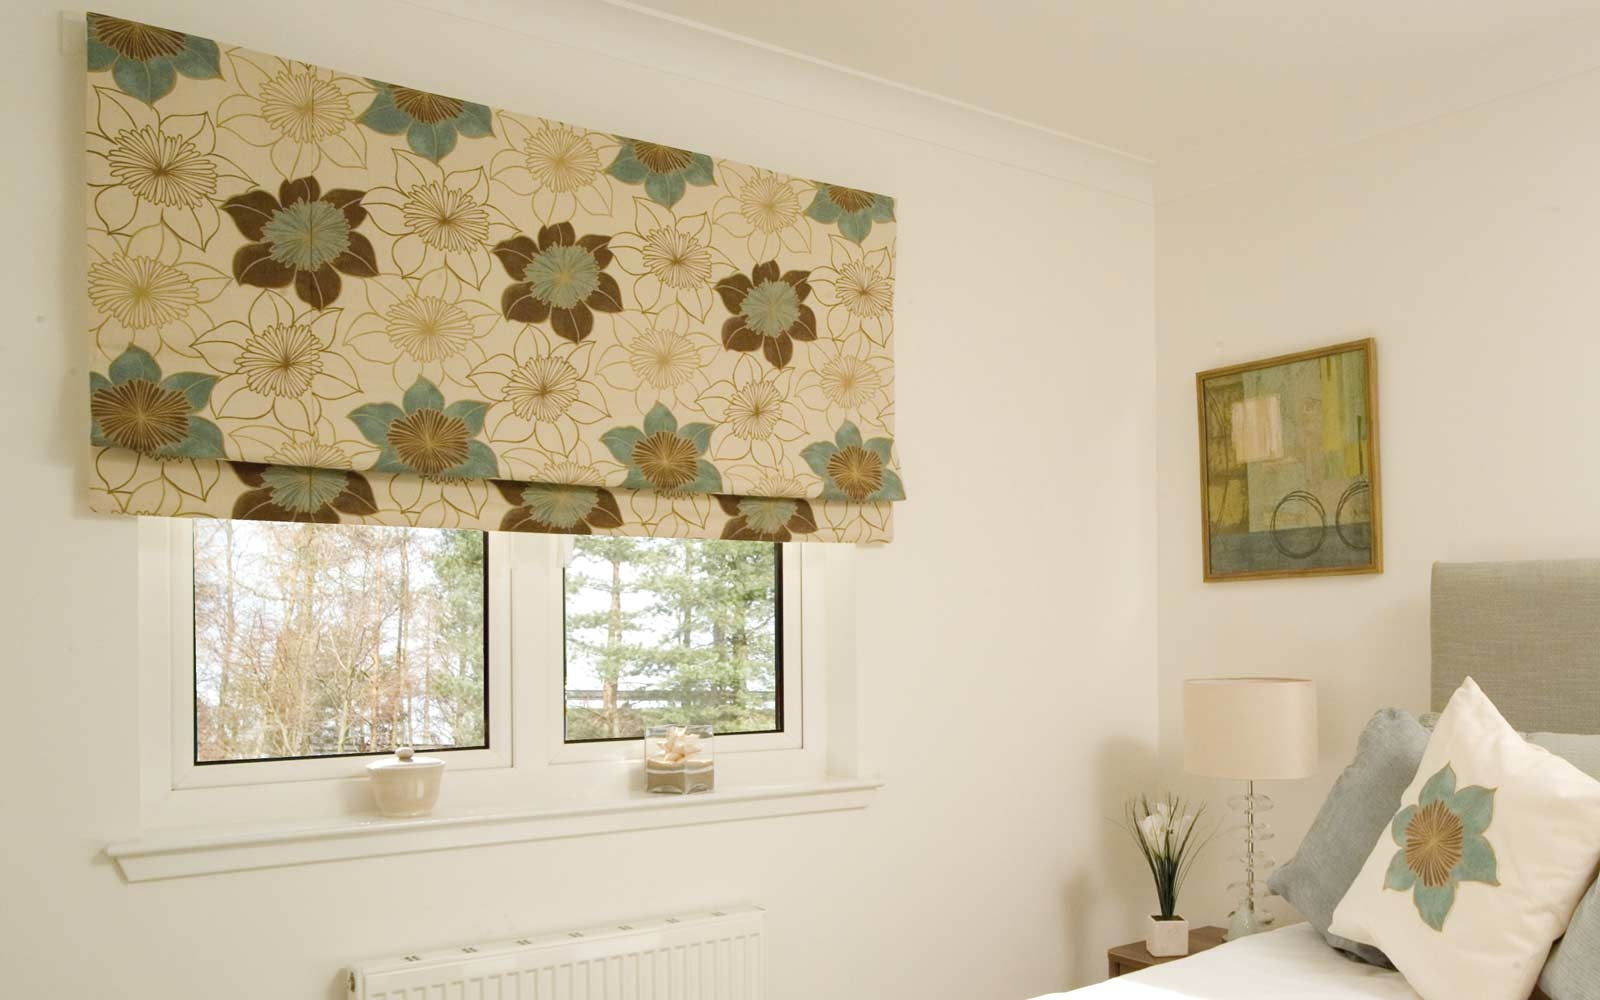 Roman Blinds Surrey Blinds Shutters Regarding Plain Roller Blinds (Image 15 of 15)